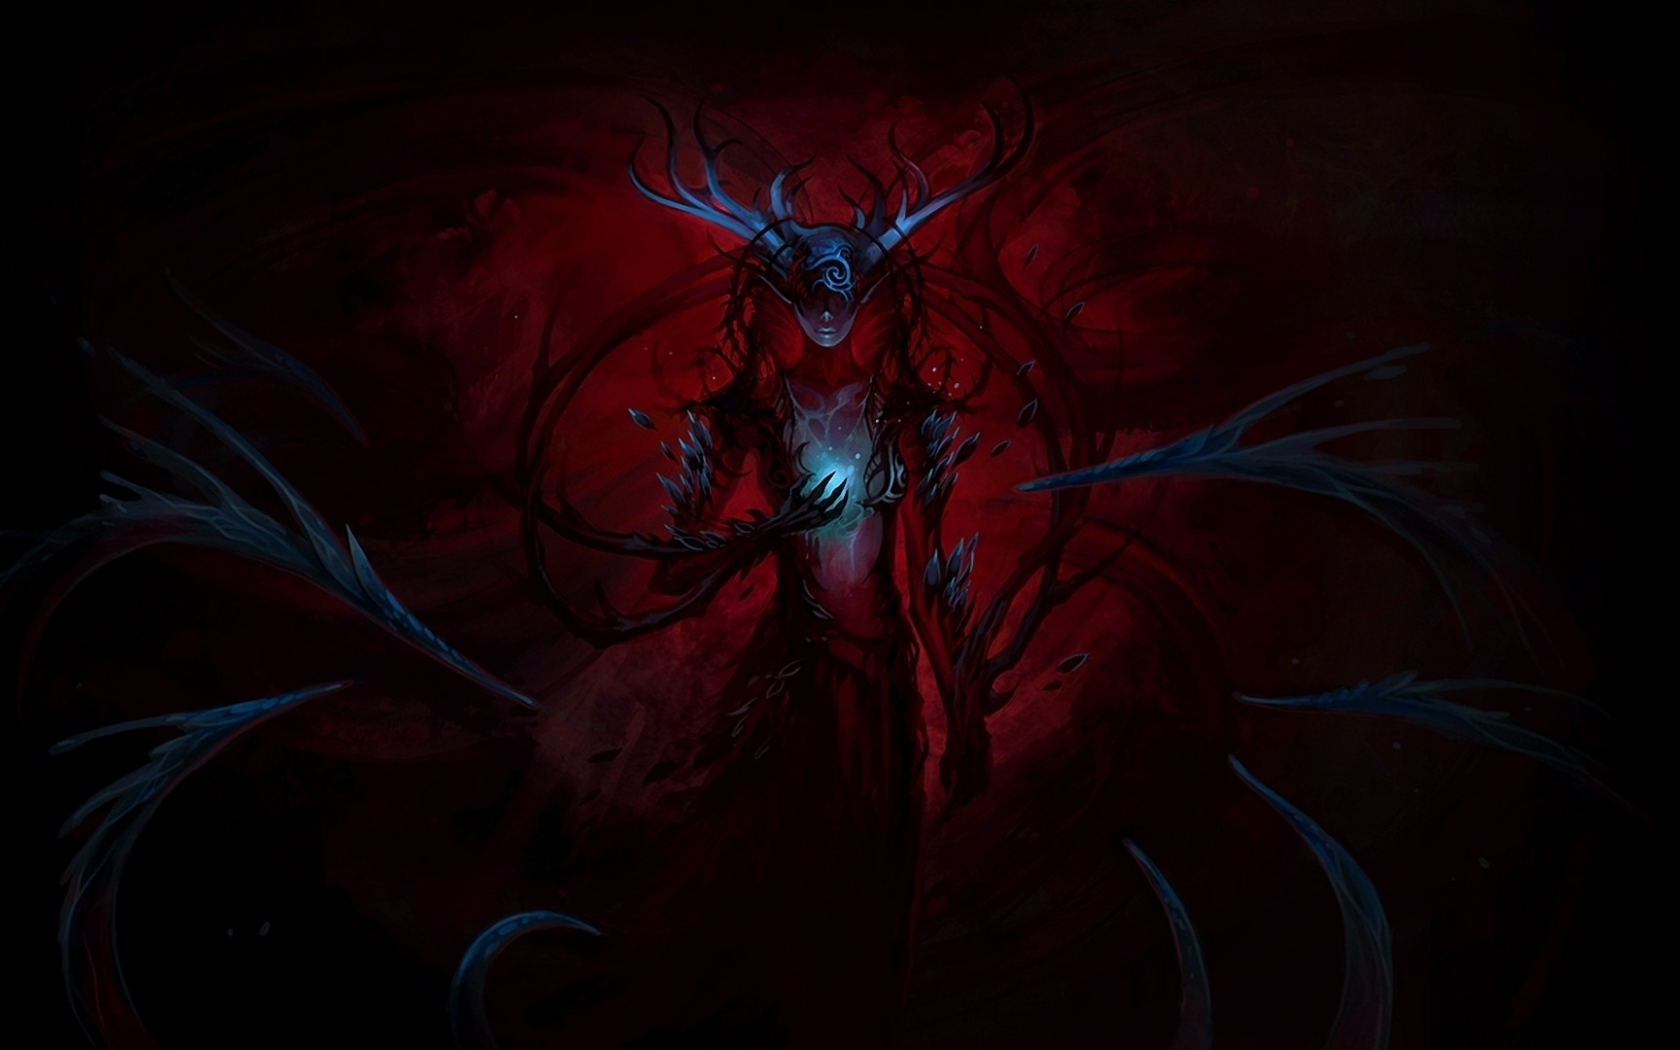 Free Download Dark Fantasy Queen Demon Wallpaper Forwallpapercom